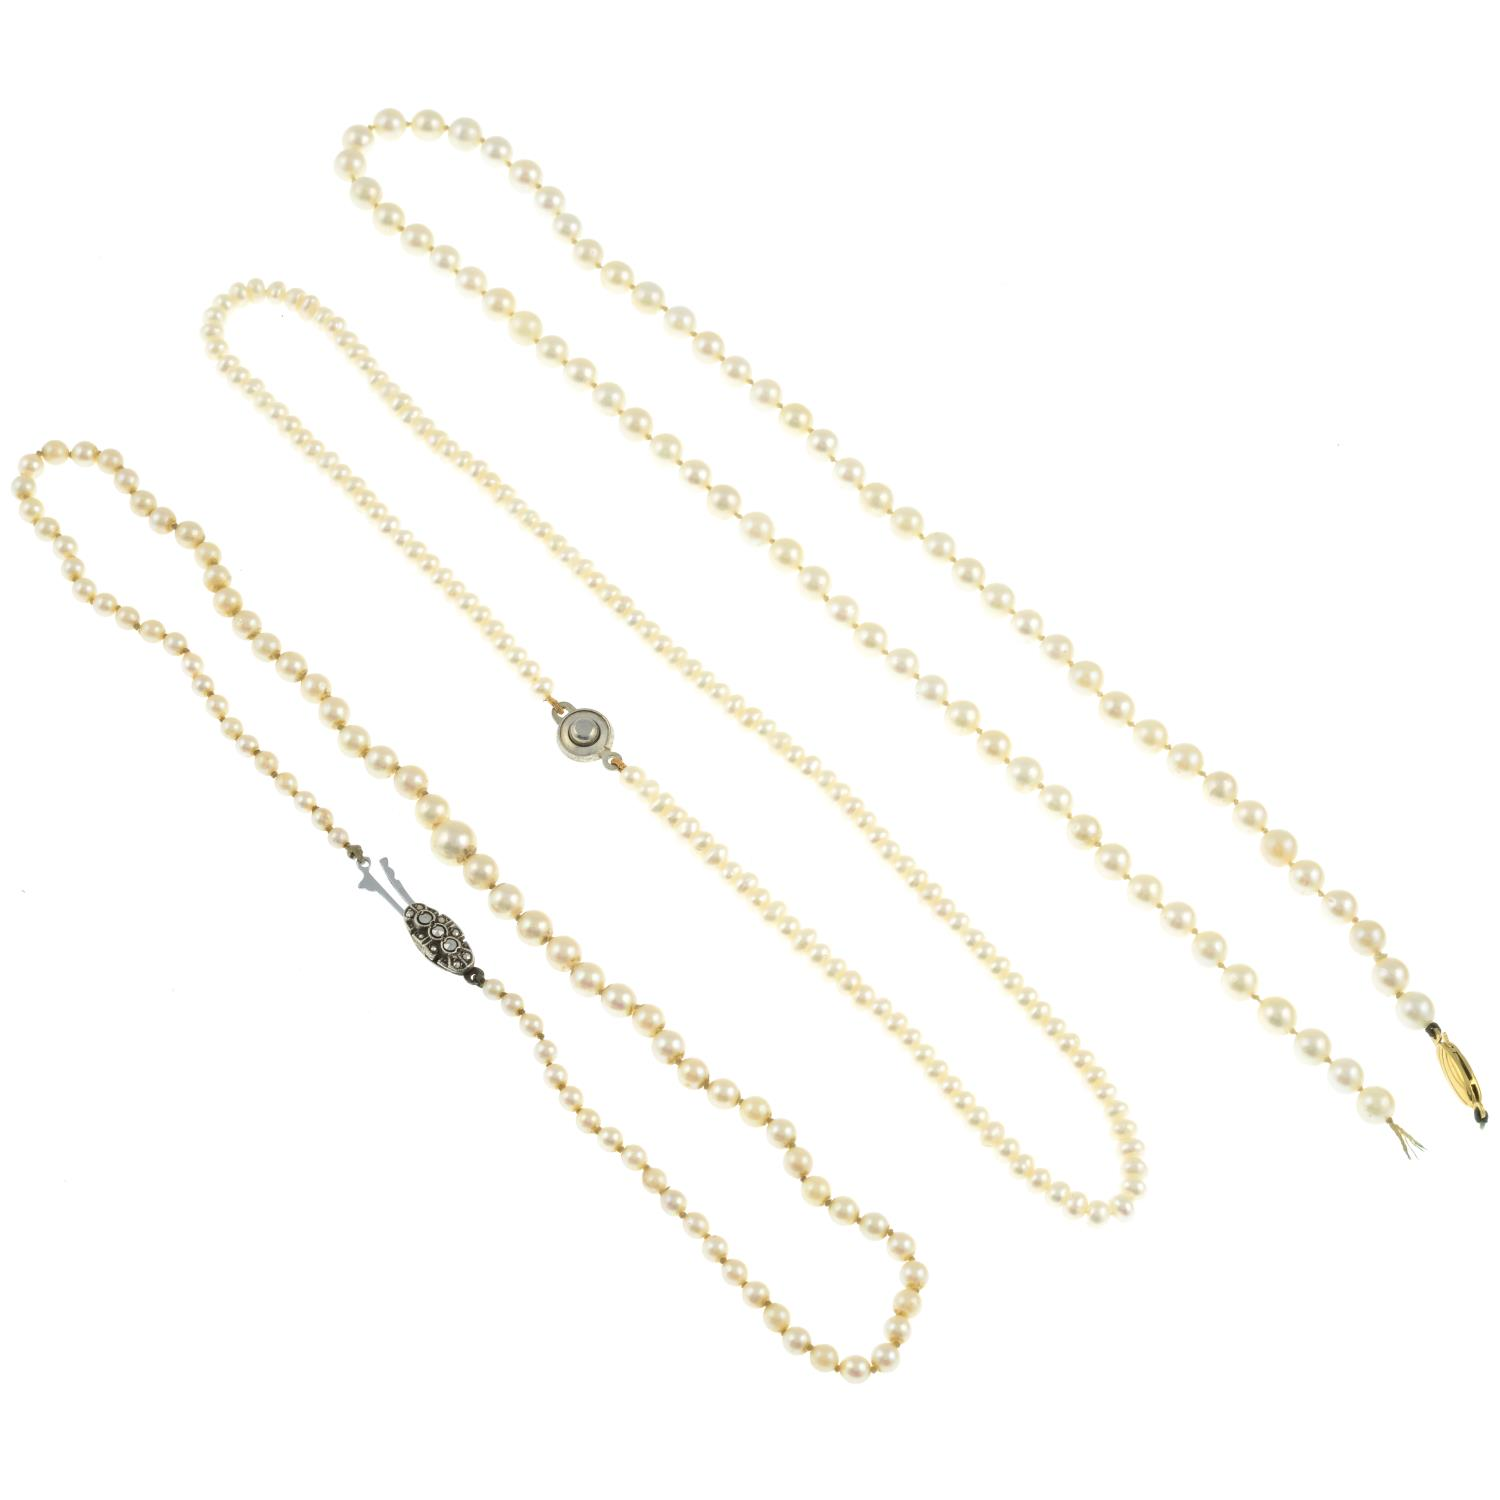 Three cultured pearl necklaces, one with marcasite clasp. - Image 3 of 3